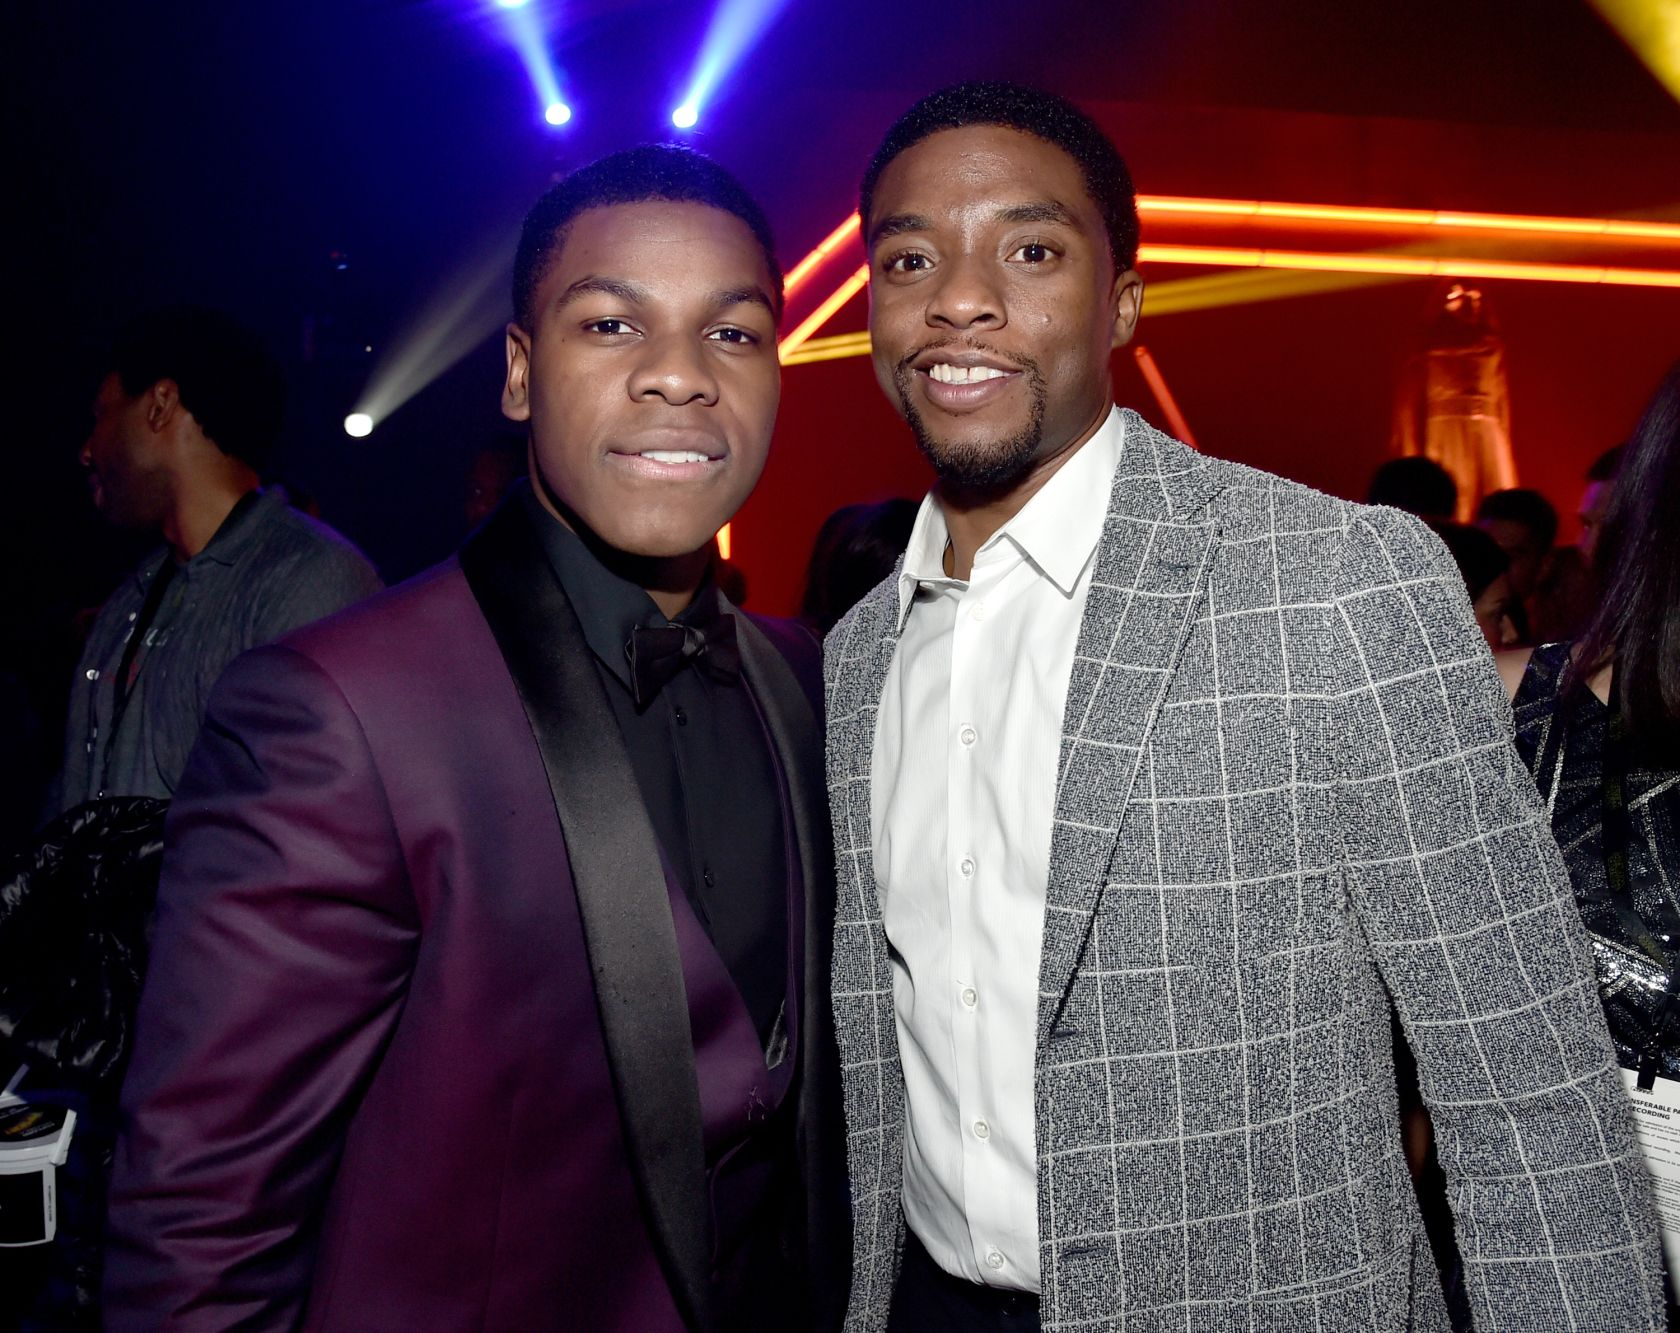 Premiere Of 'Star Wars: The Force Awakens' - After Party